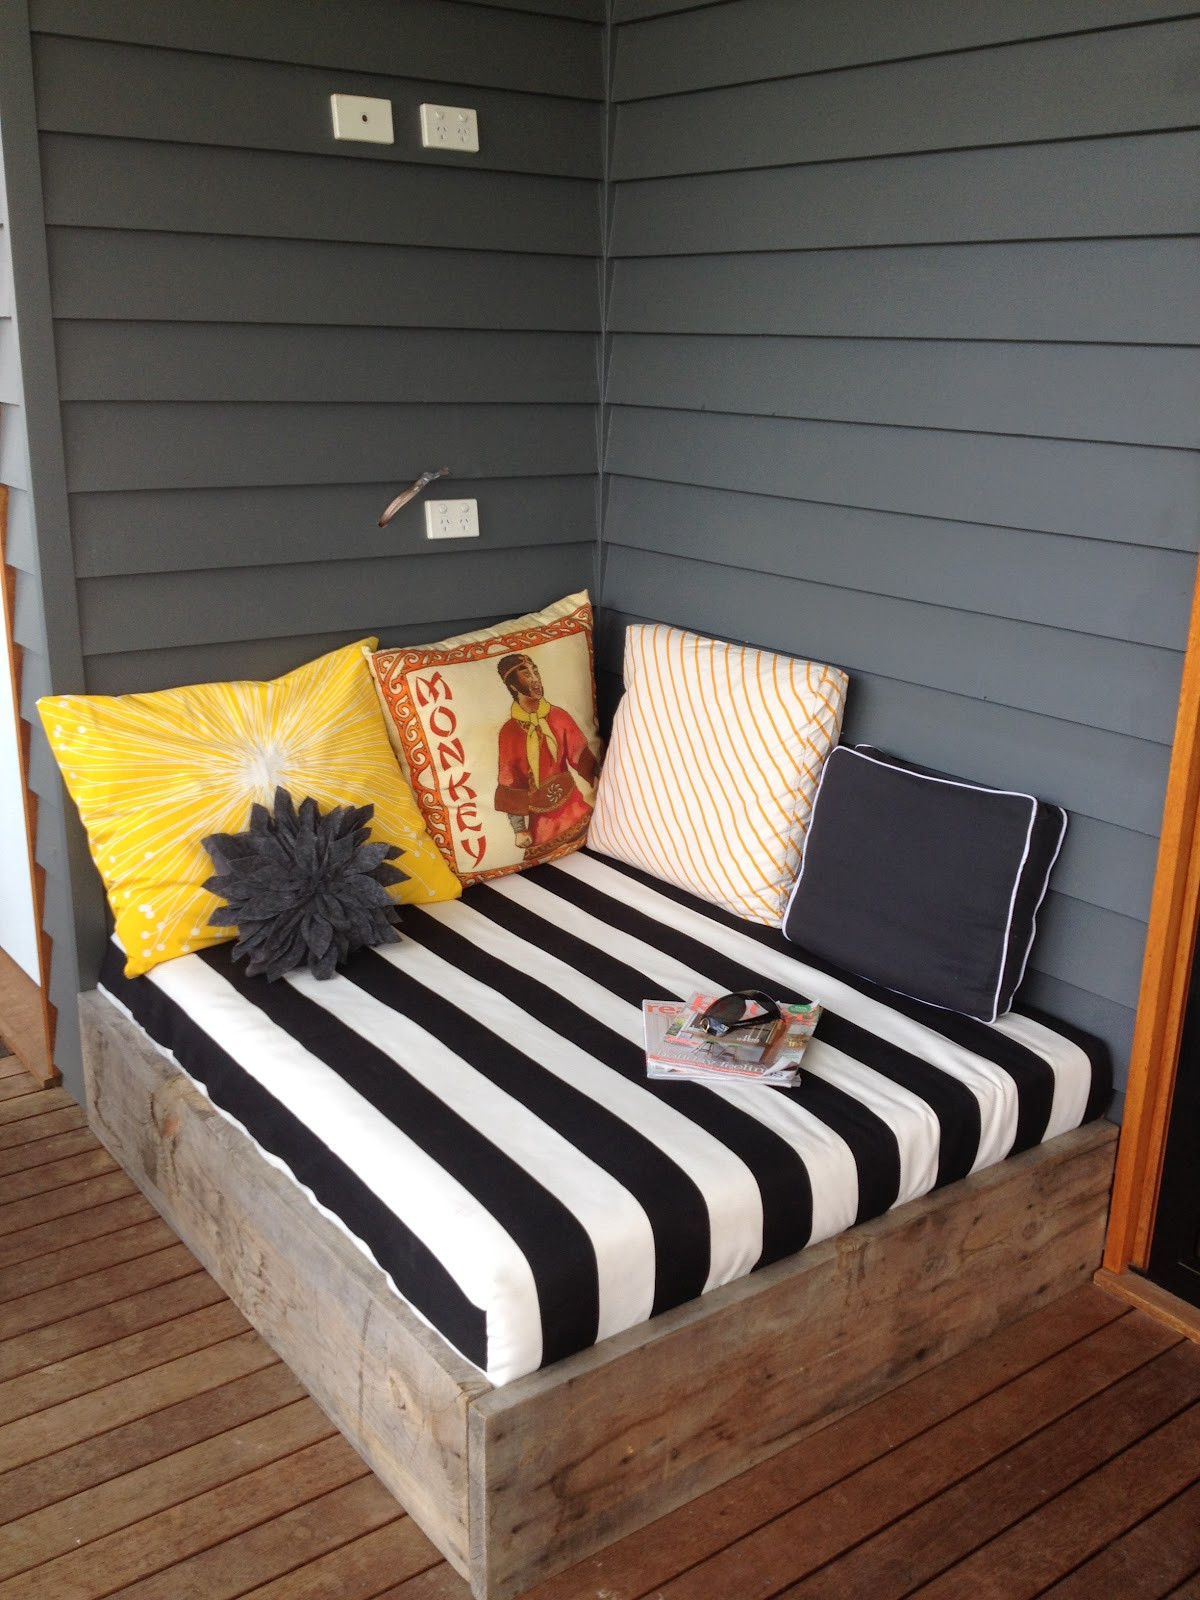 Best ideas about DIY Outdoor Daybed . Save or Pin apprentice extrovert DIY Outdoor Day Bed Reveal Now.